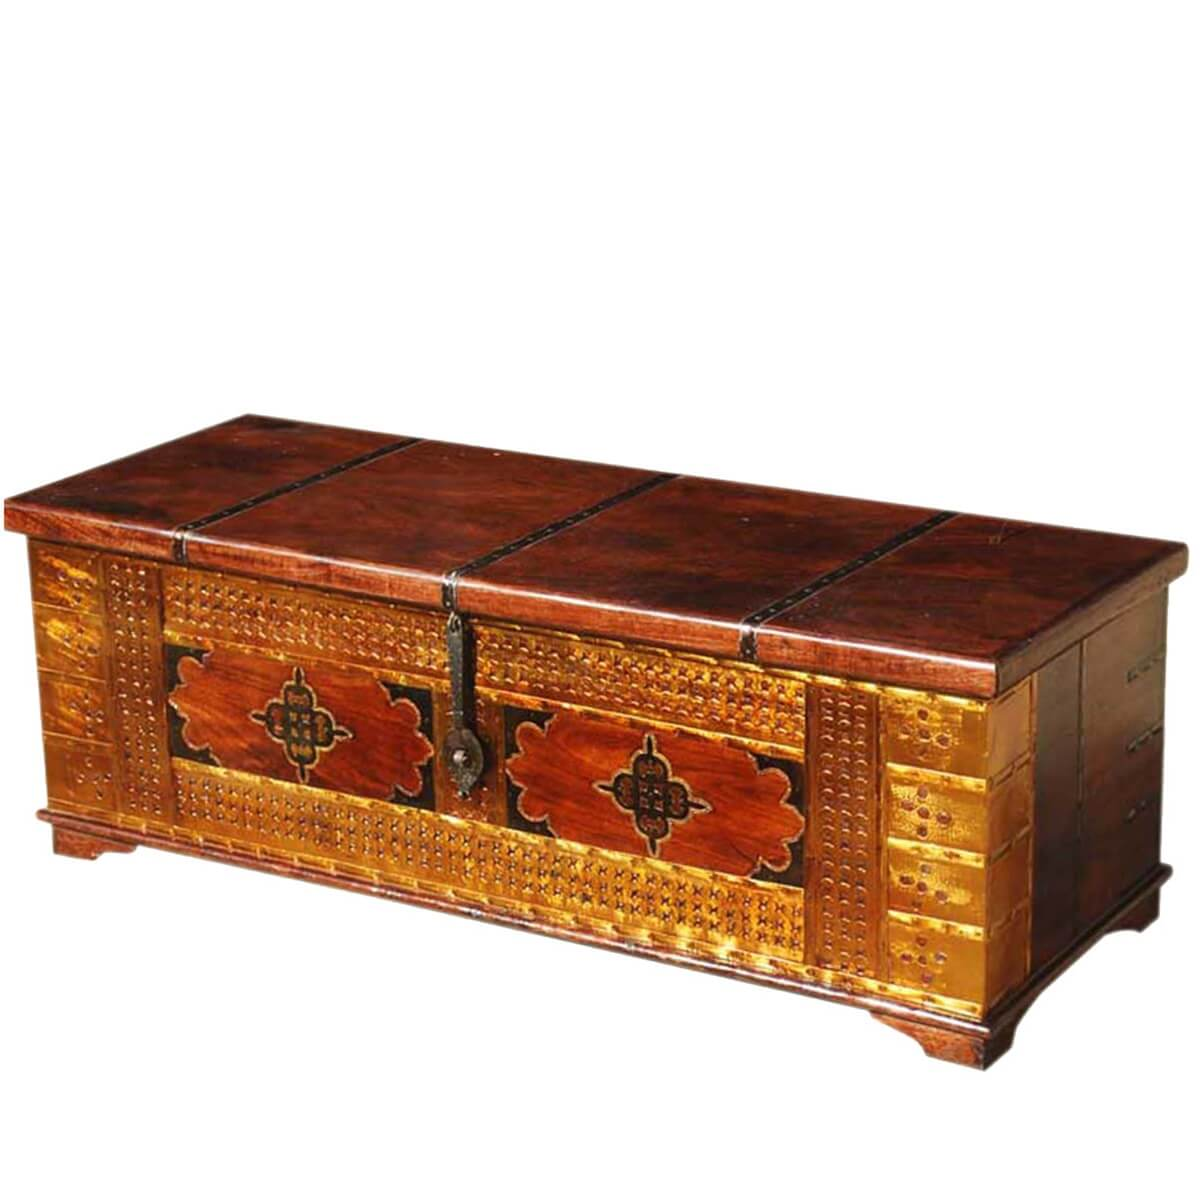 Unique handmade solid wood brass coffee table storage chest Coffee table chest with storage